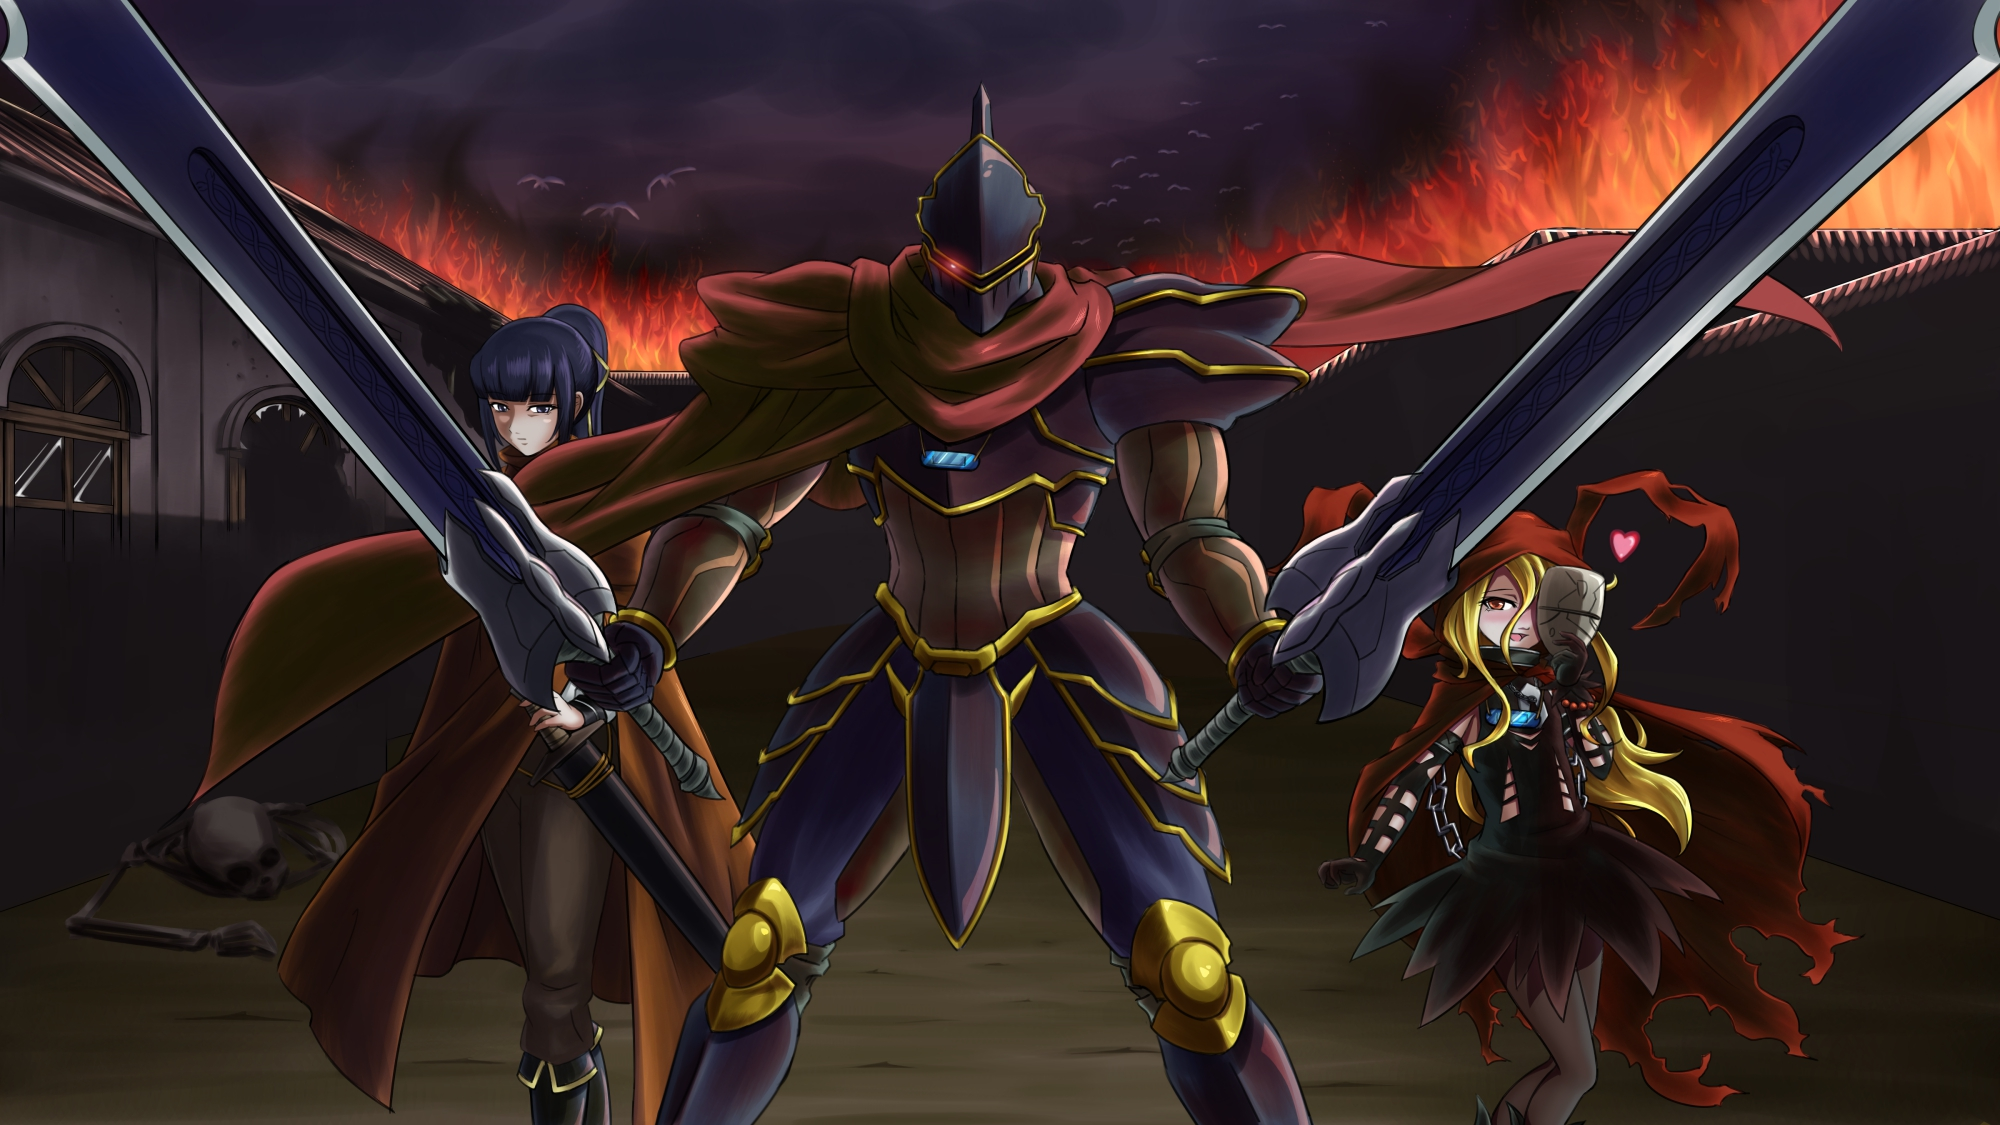 Downaload Overlord King And Warriors Art Wallpaper: Overlord Wallpapers High Quality